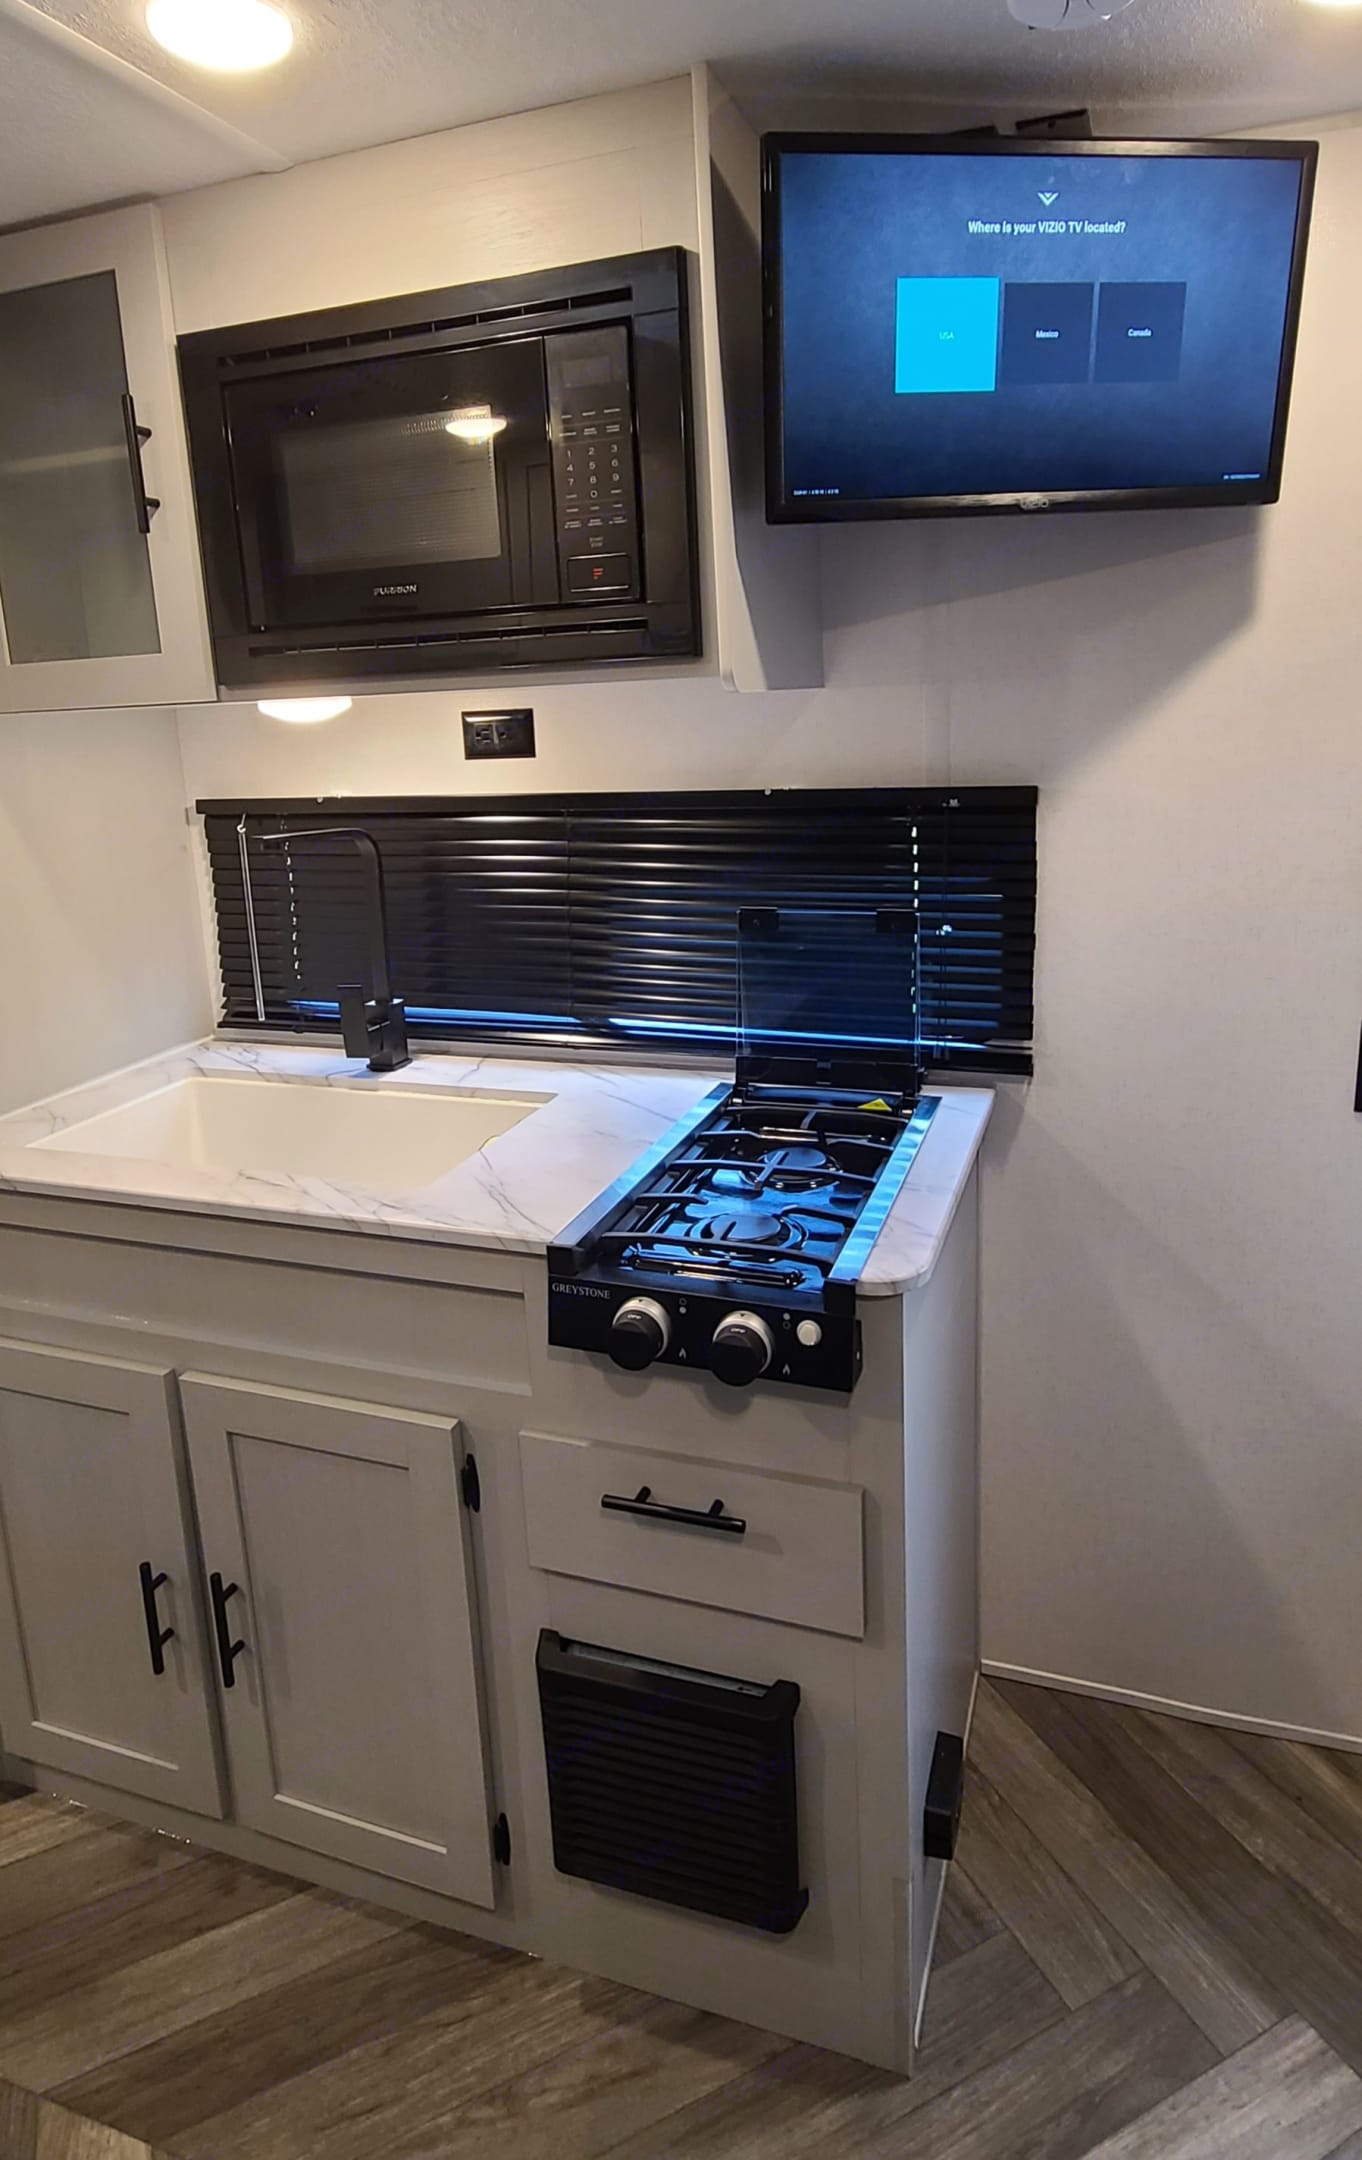 Microwave and stove with large window behind sink. Forest River Salem 2021